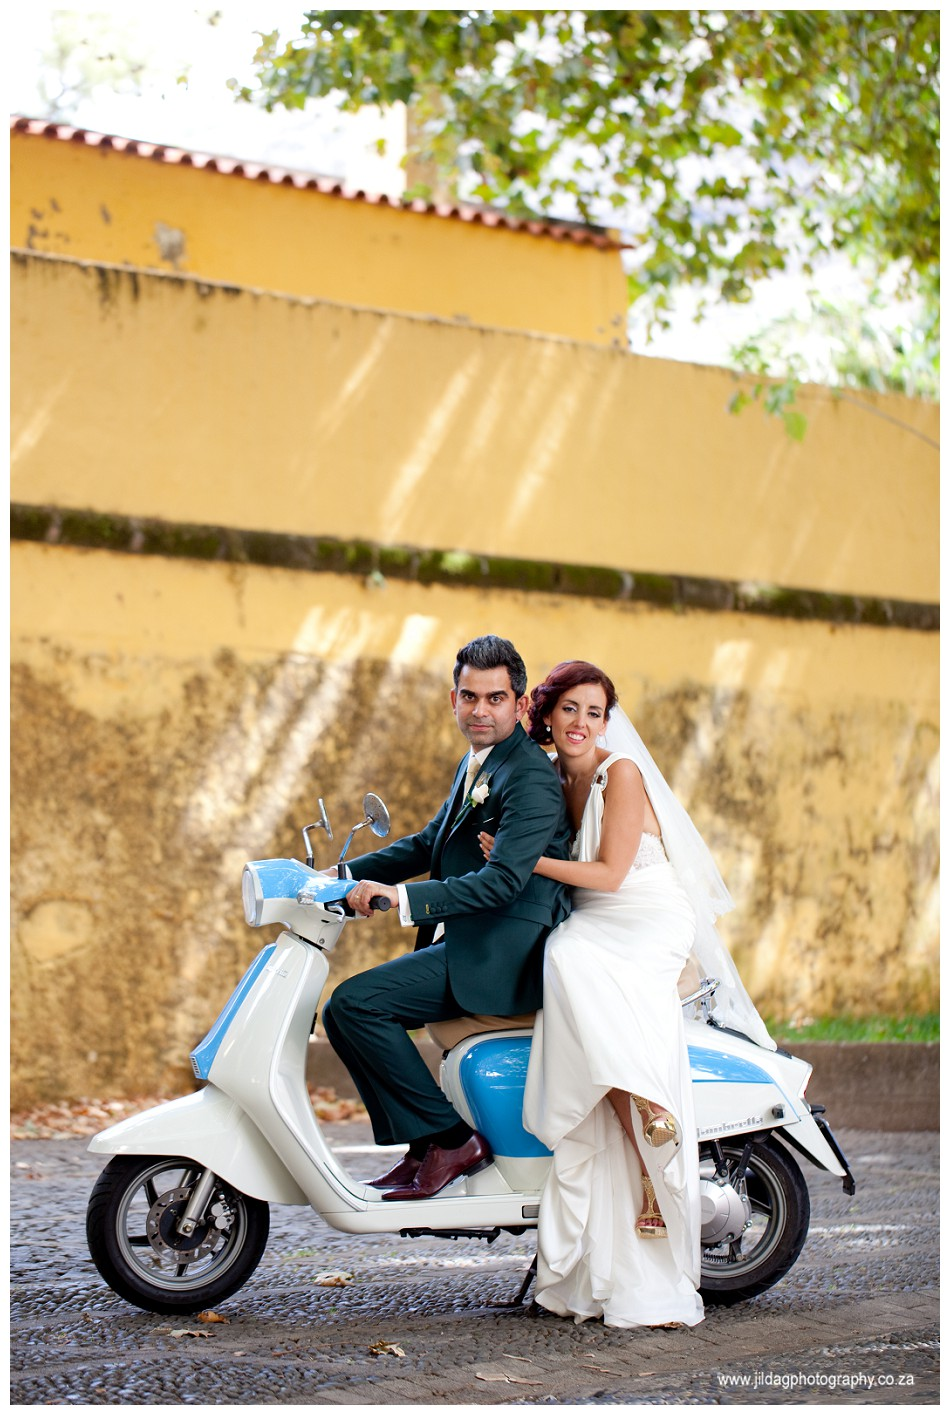 Destination wedding, Madeira, Portugal wedding, Jilda G Photography (79)